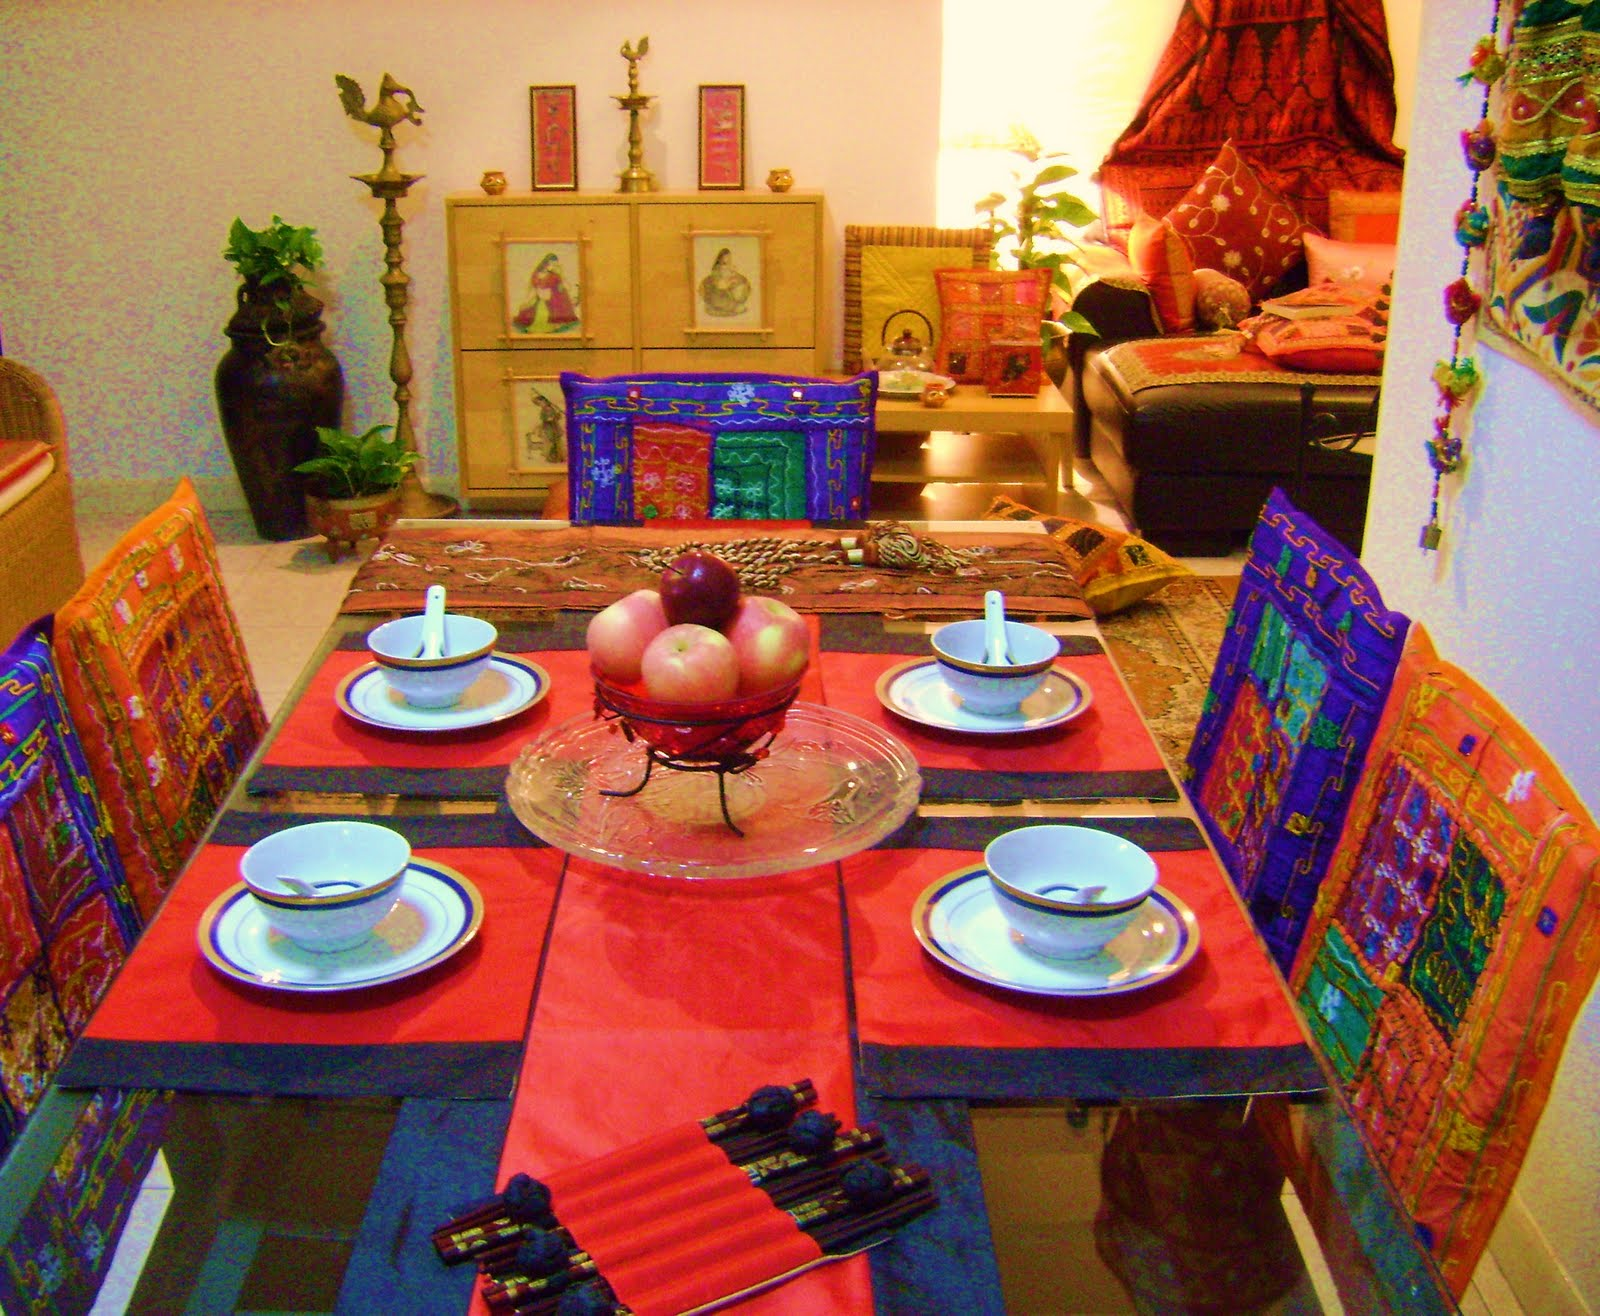 Indian Home Design: Ethnic Indian Decor: An Ethnic Indian Home In Singapore